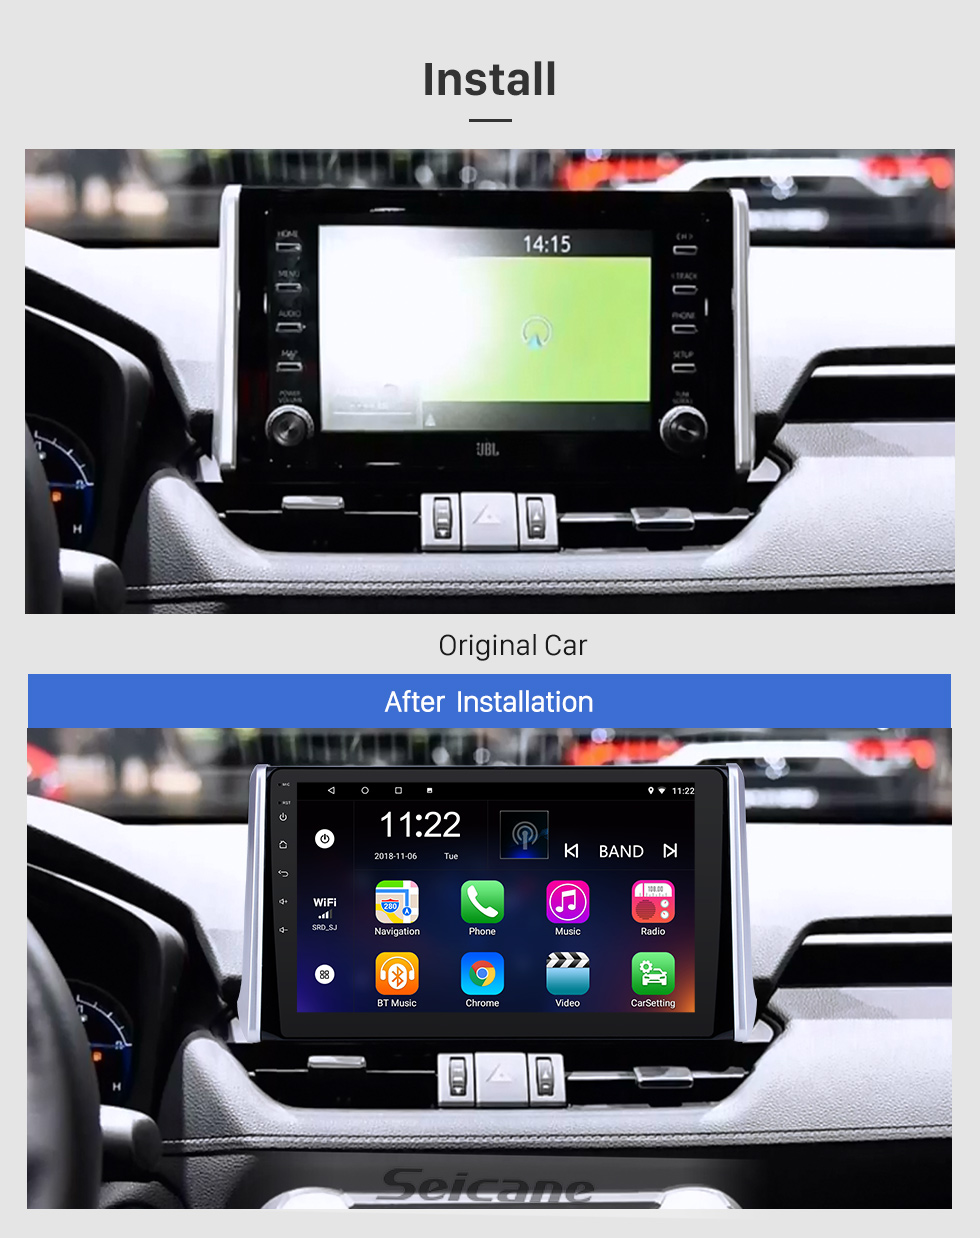 Seicane 10.1 inch Android 8.1 HD Touchscreen GPS Navigation Radio for 2019 Toyota RAV4 with Bluetooth USB WIFI AUX support Carplay Rear camera OBD TPMS